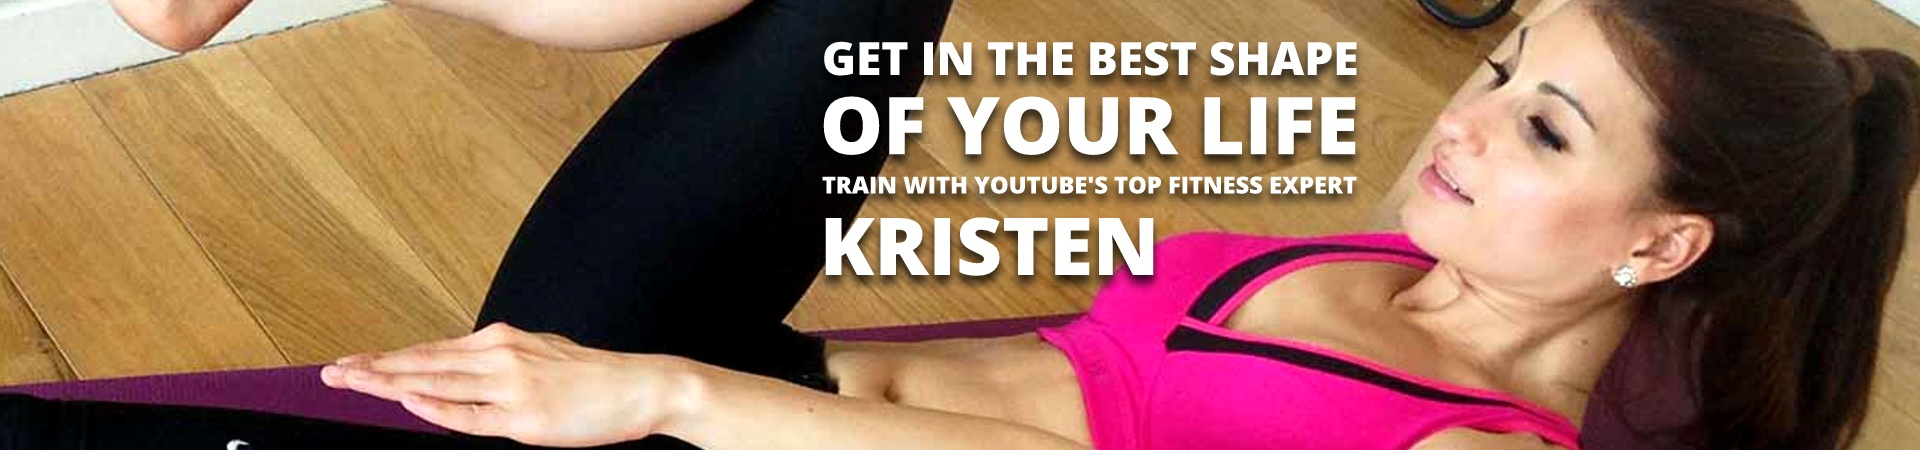 online fitness videos, improve muscle tone, tone up dvd, workout online